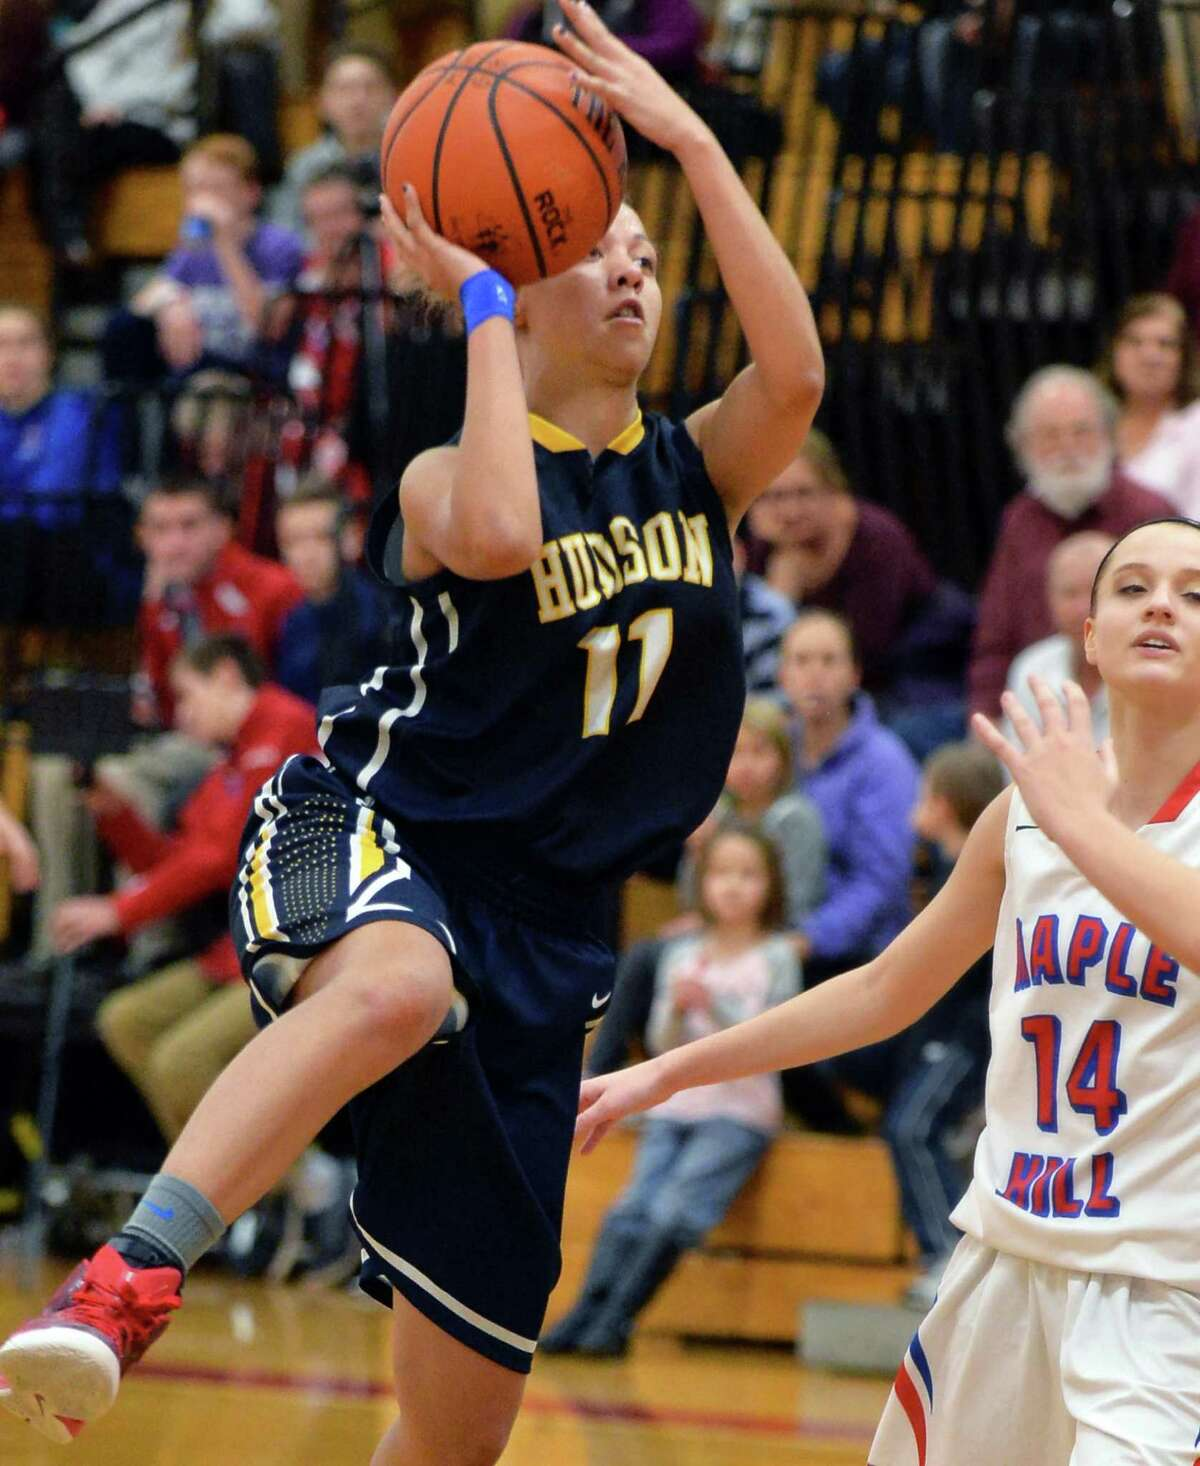 Hudson's #11 Jasmyne Peck, left, goes to the hoop during Saturday's game against Maple Hill Jan. 9, 2016 in Castleton, NY. (John Carl D'Annibale / Times Union)